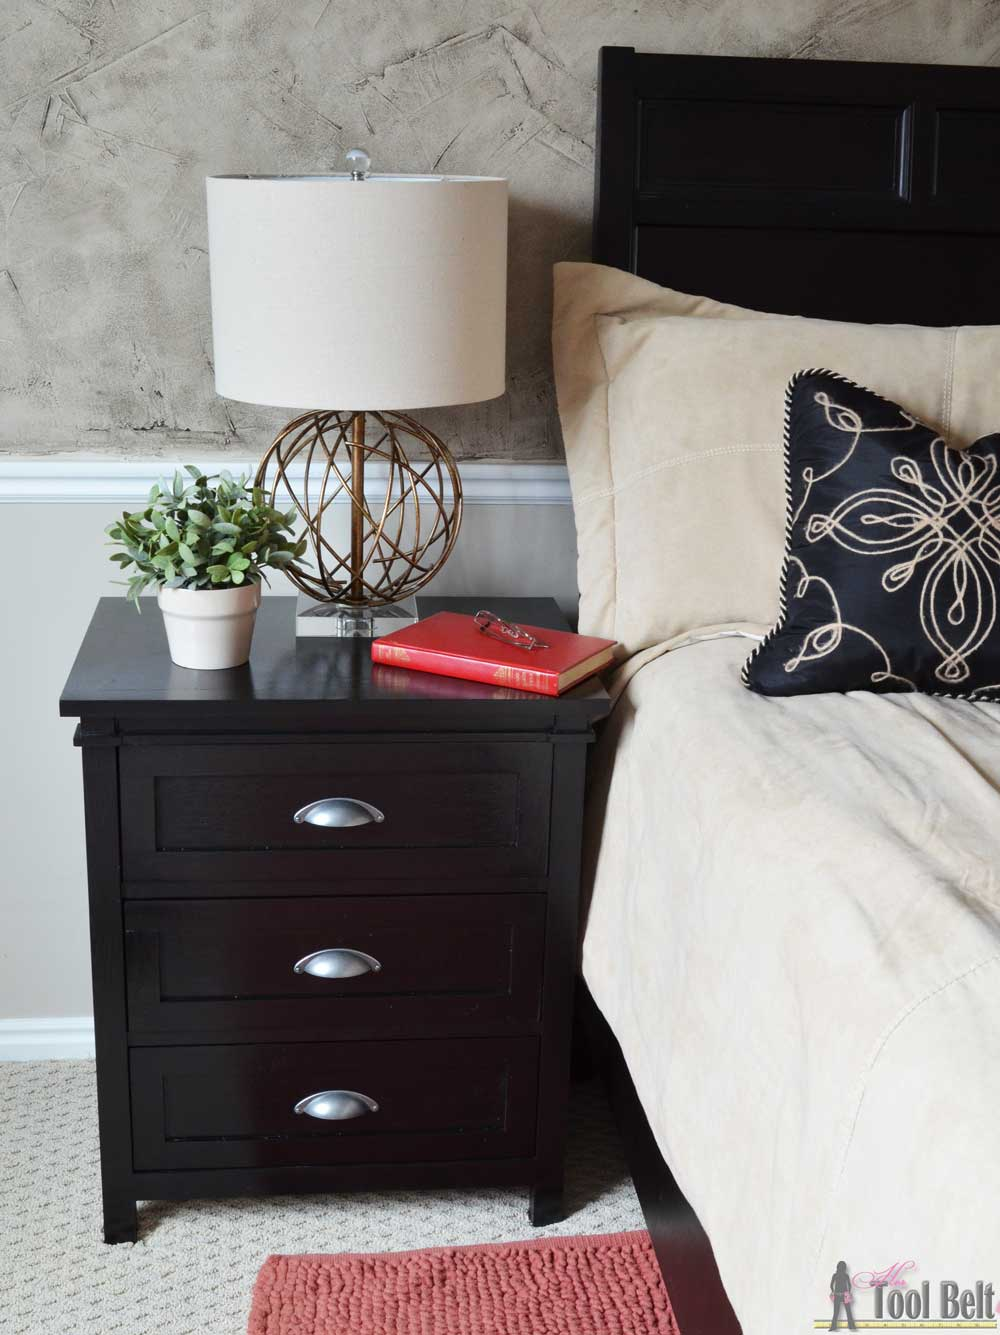 diy craftsman 3 drawer nightstand - her tool belt Diy Nightstand Plans